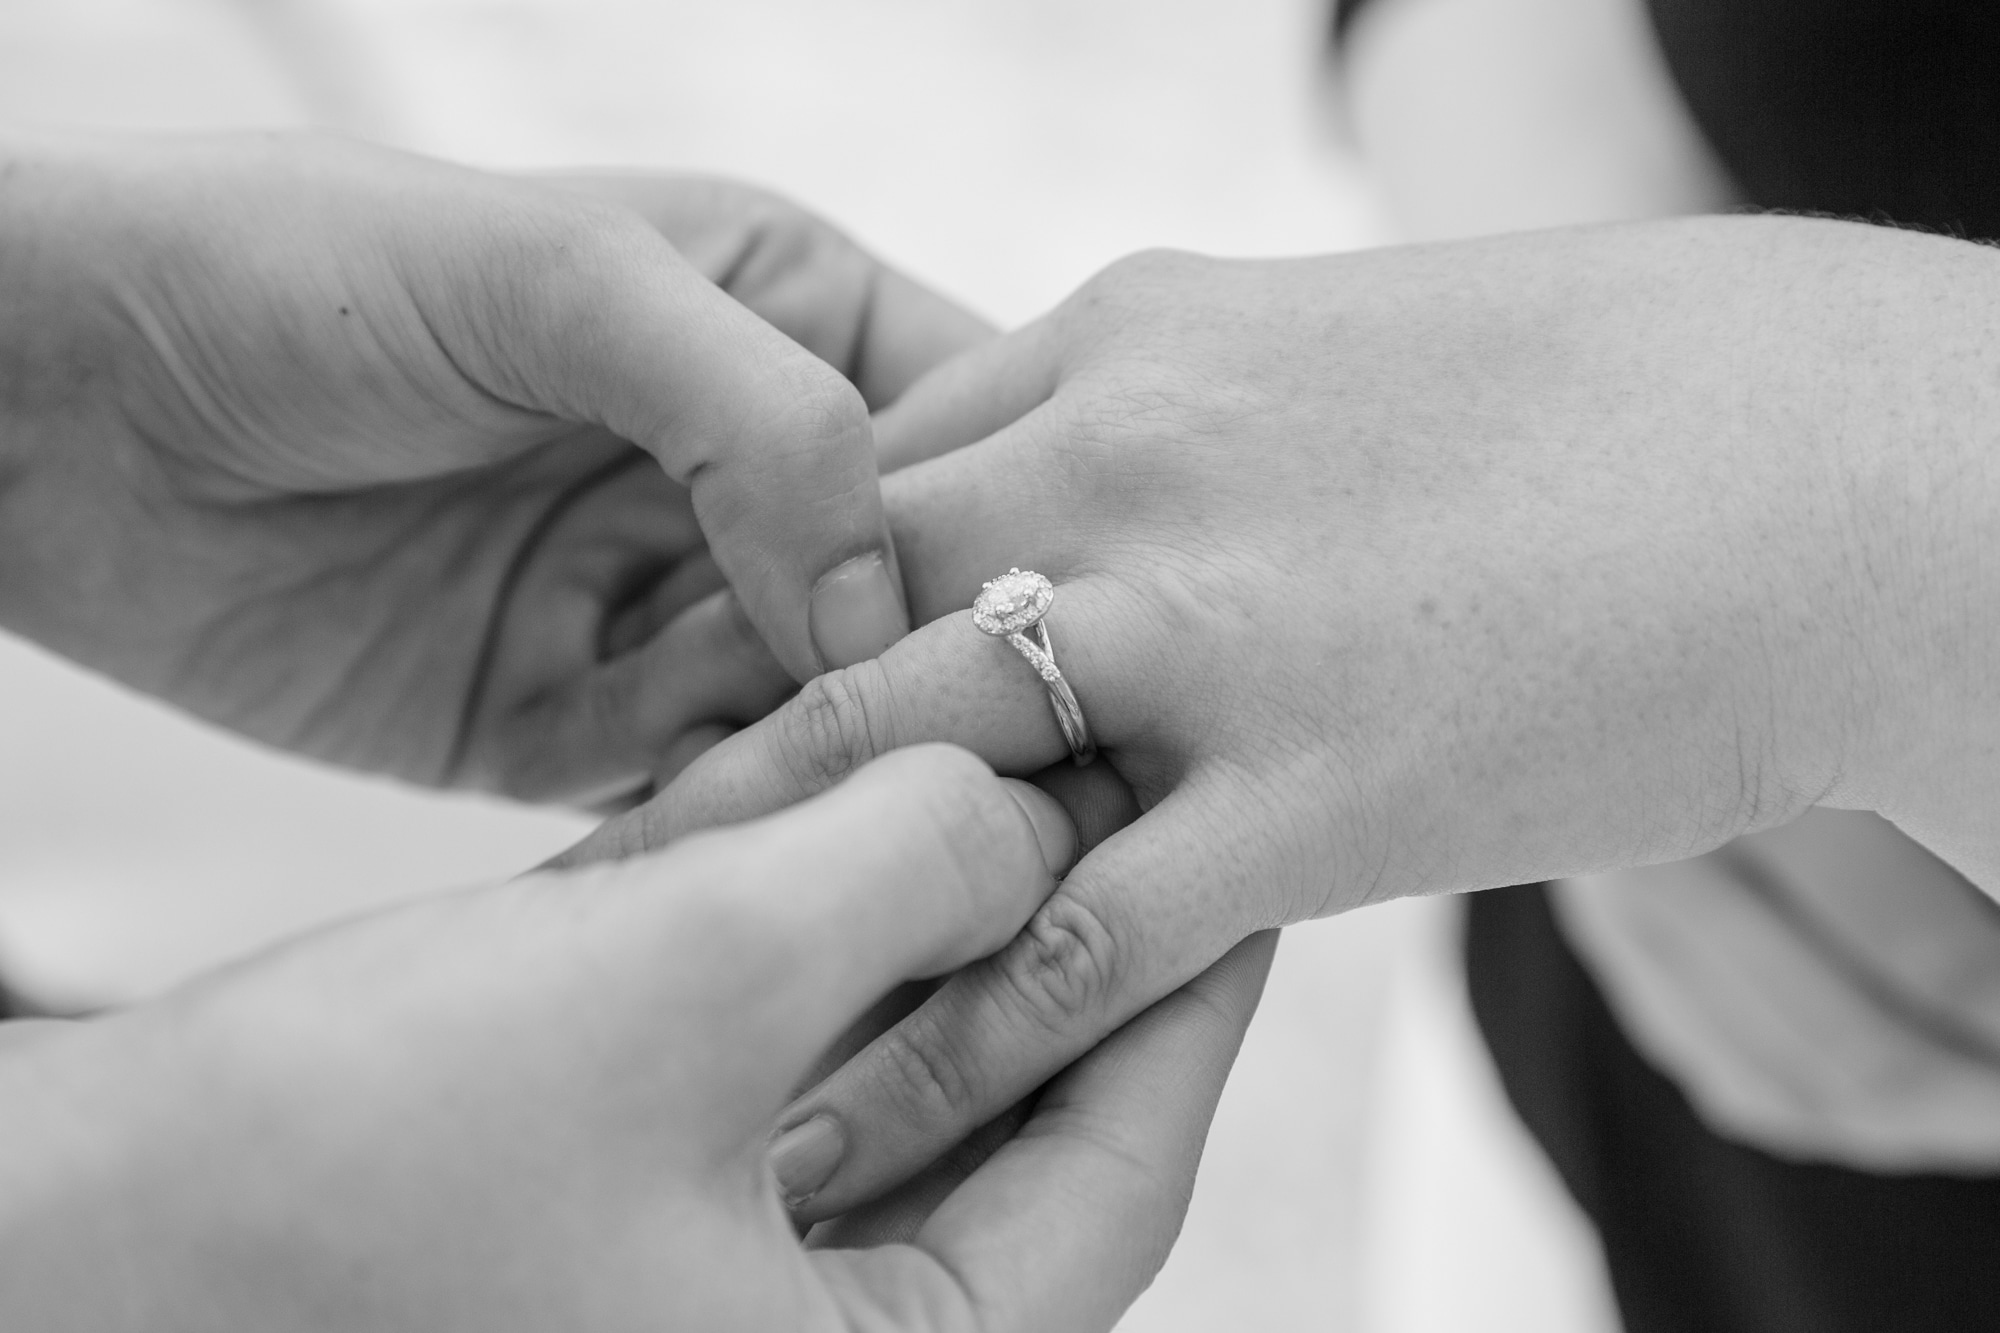 black and white image of man holding woman's hand with engagement ring on